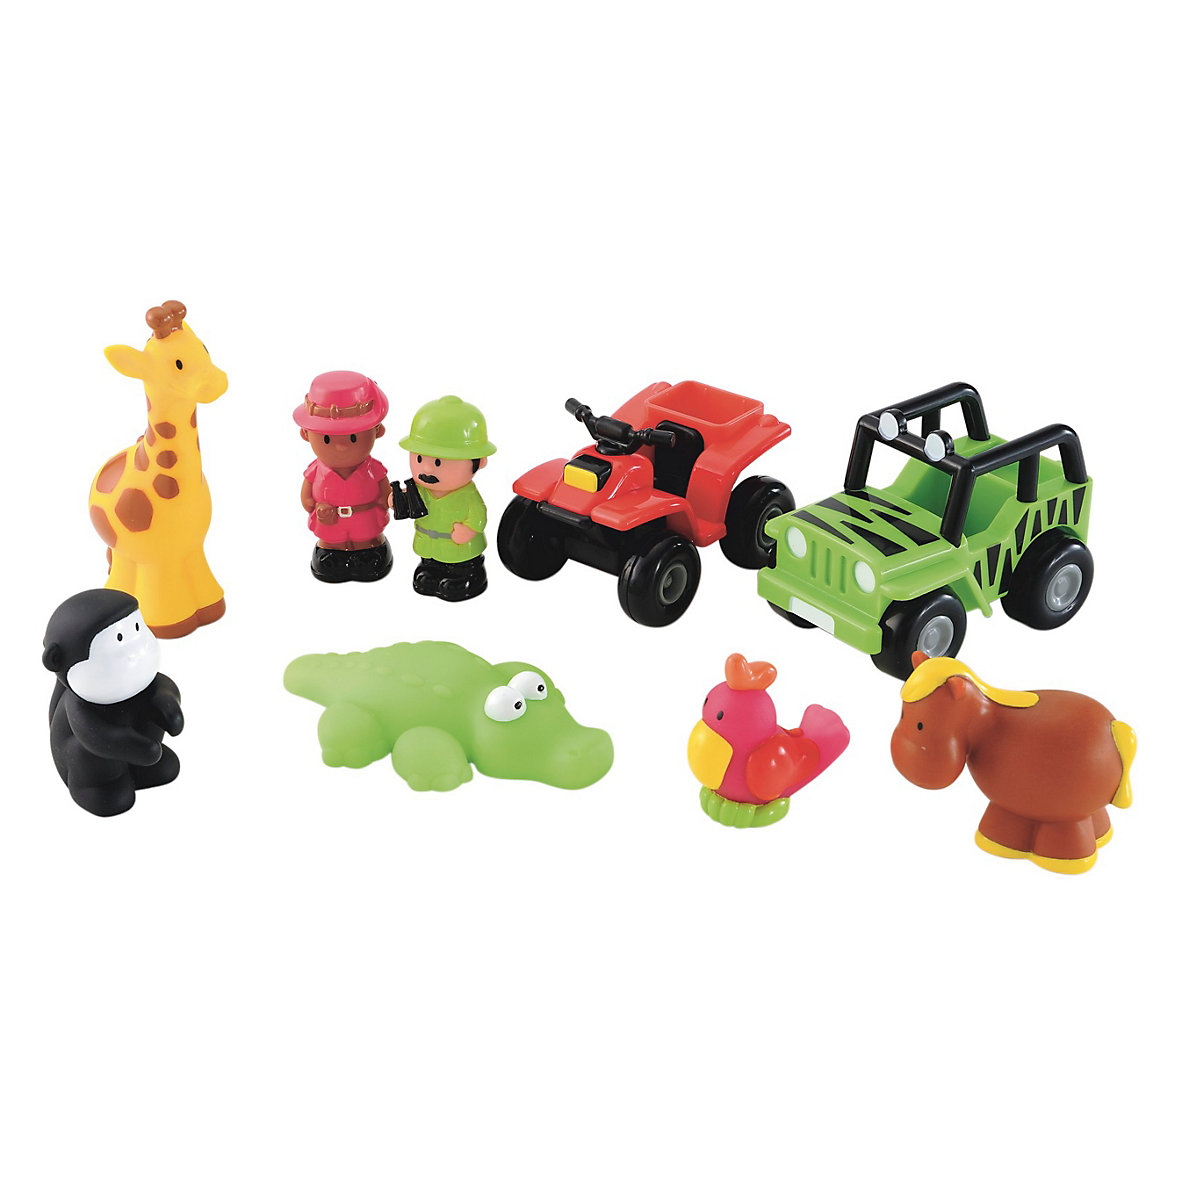 Toys For Boys 18 Months : New elc boys and girls happyland safari adventures toy